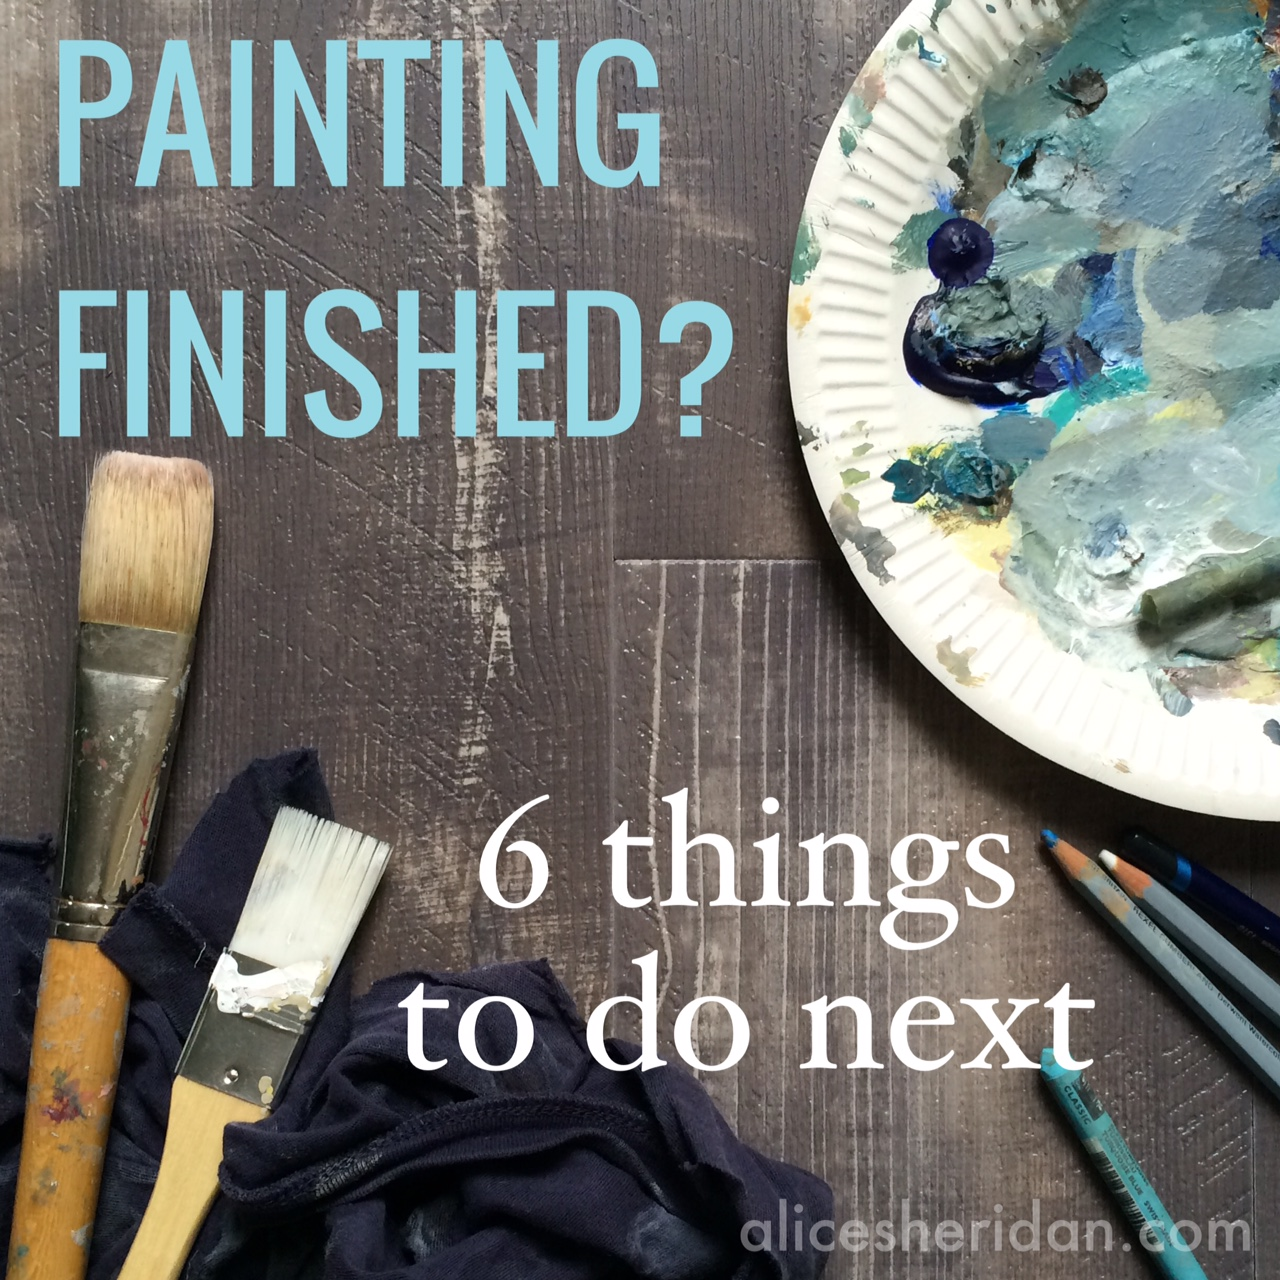 6 things to do after a painting is finished